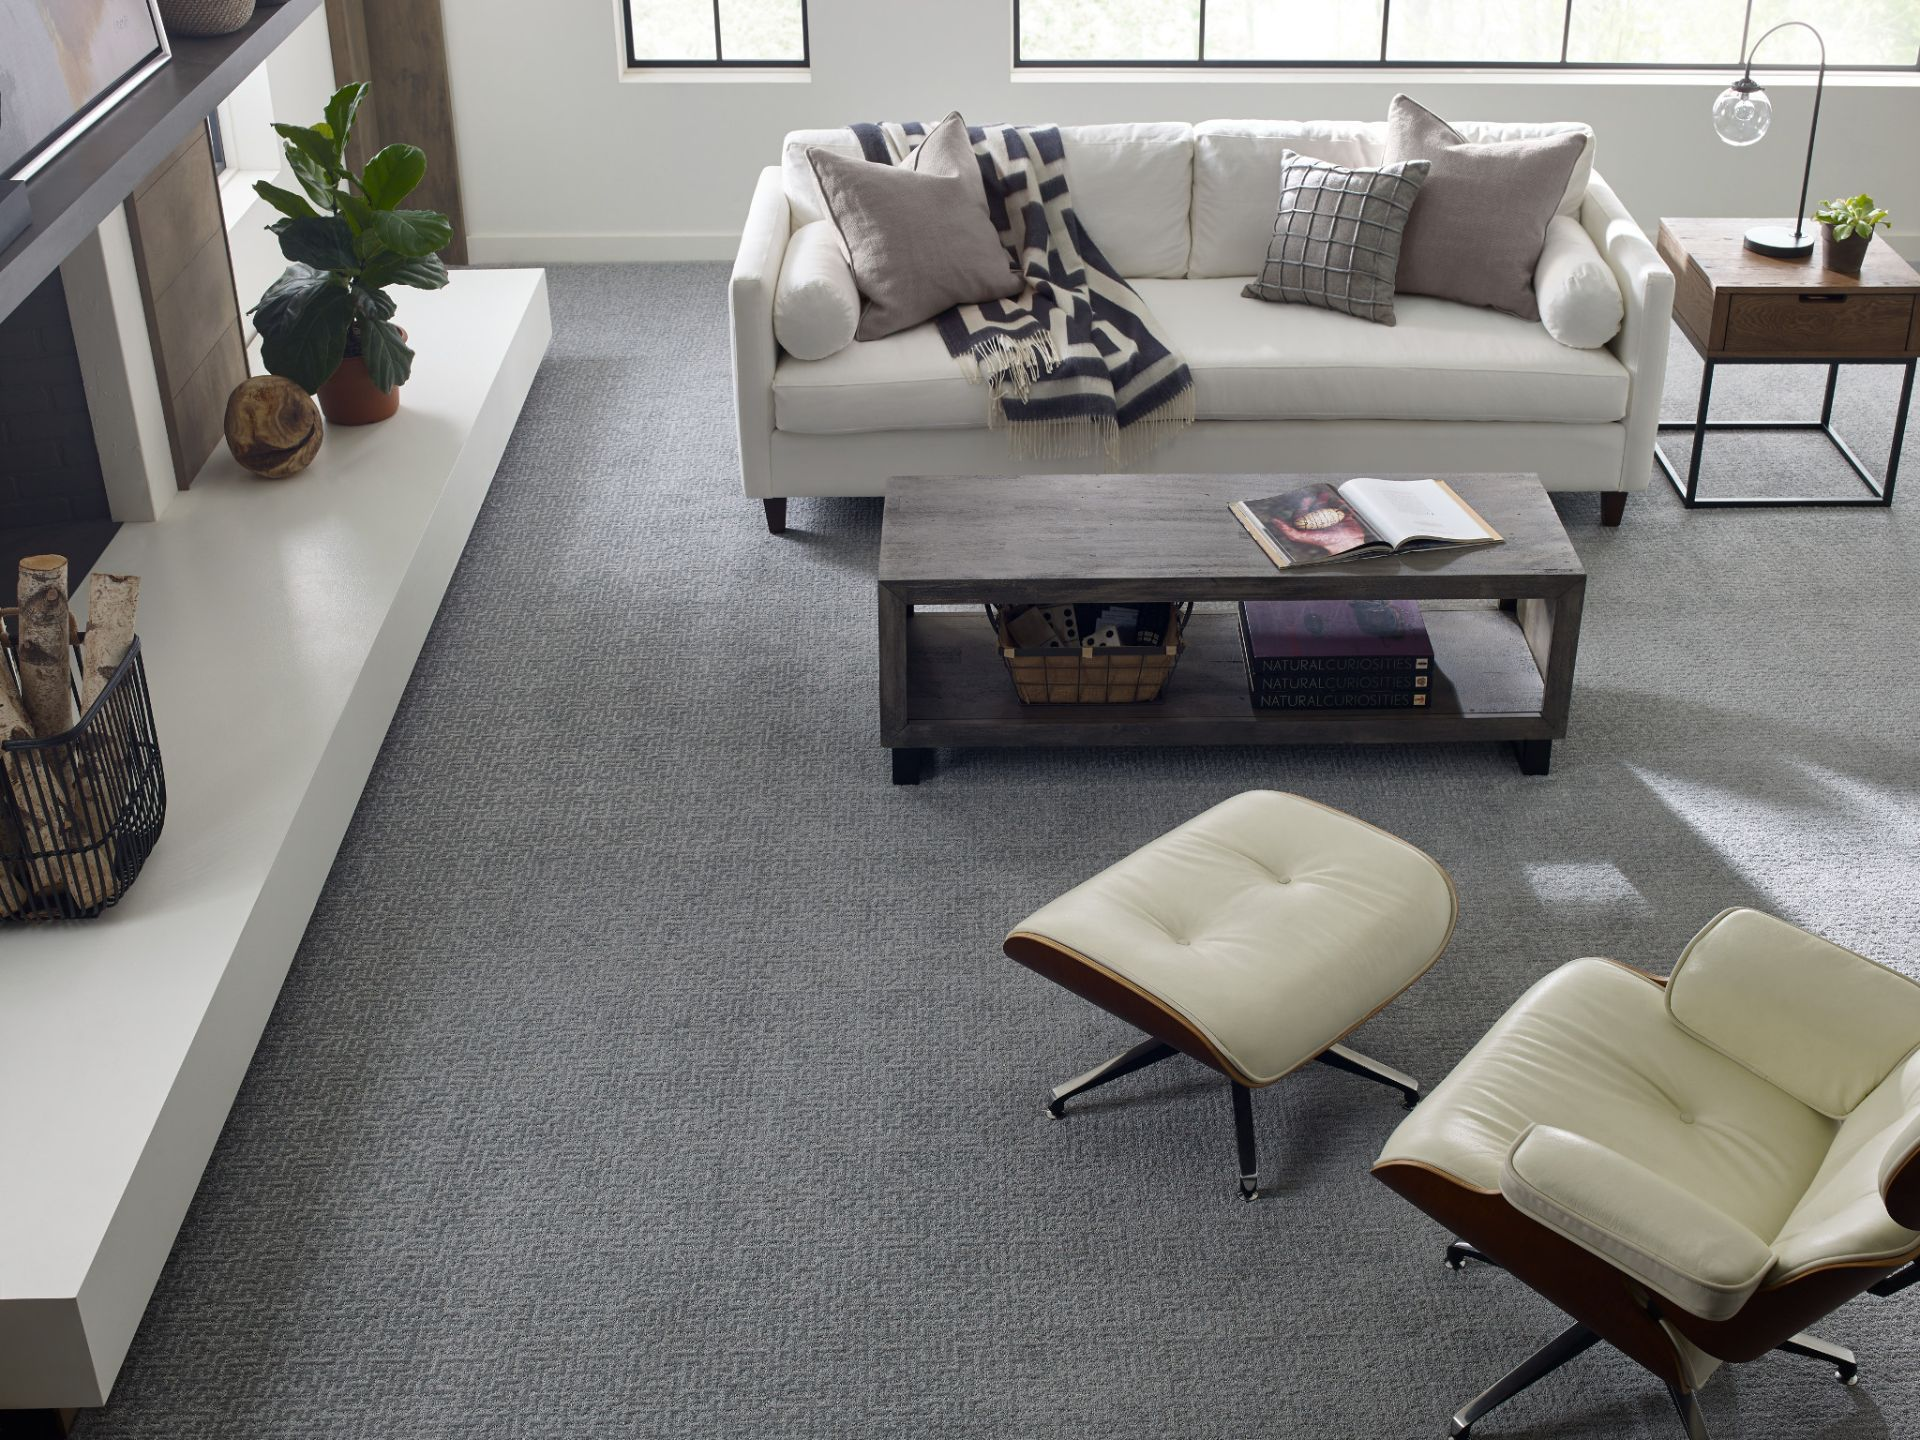 Shaw Floors Featured In Show Homes Fashion Magazines Durable Carpet Shaw Floors Show Home